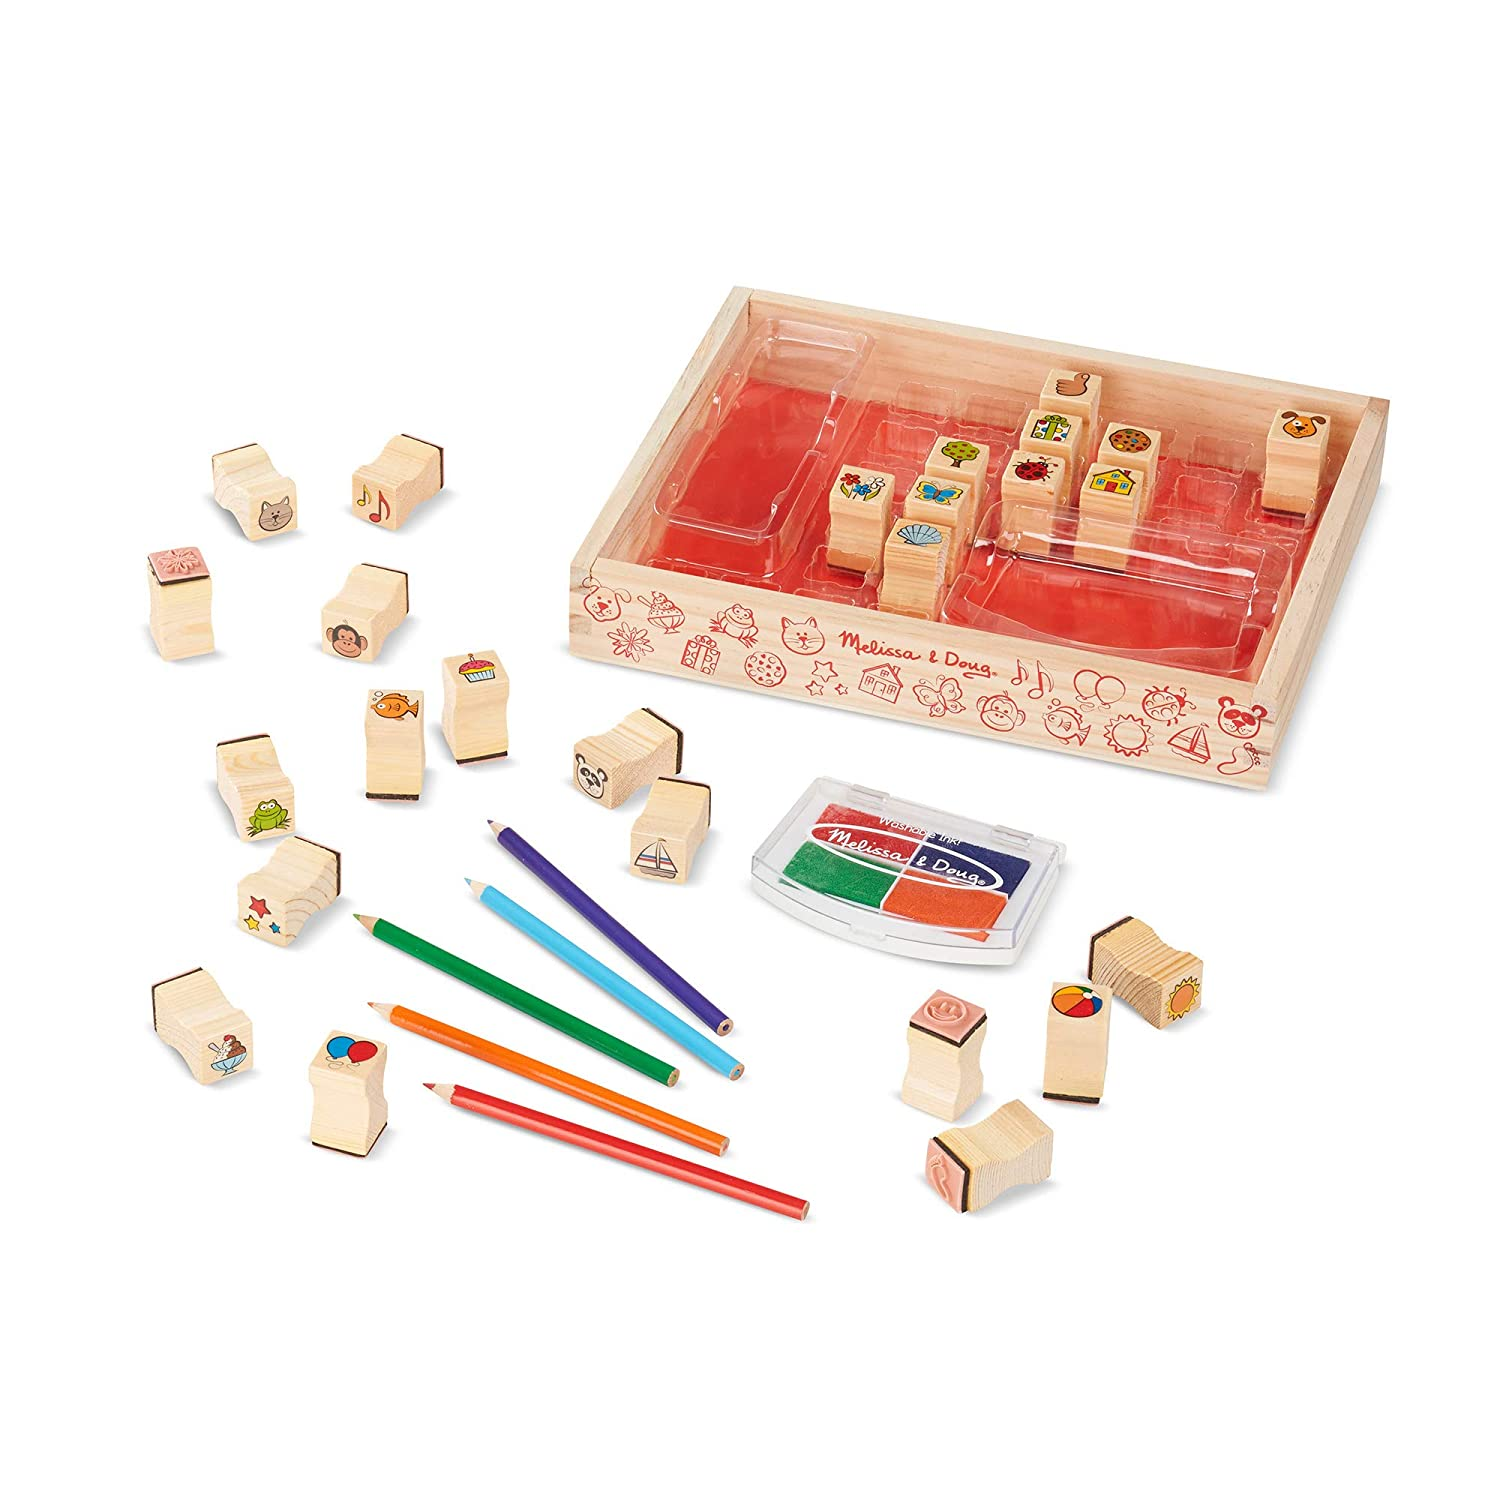 Melissa Doug Deluxe Wooden Stamp Set Animal Stamps Best For 4 5 6 Year Olds And Up Wooden Favorite Things Stamp Set Sturdy Wooden Storage